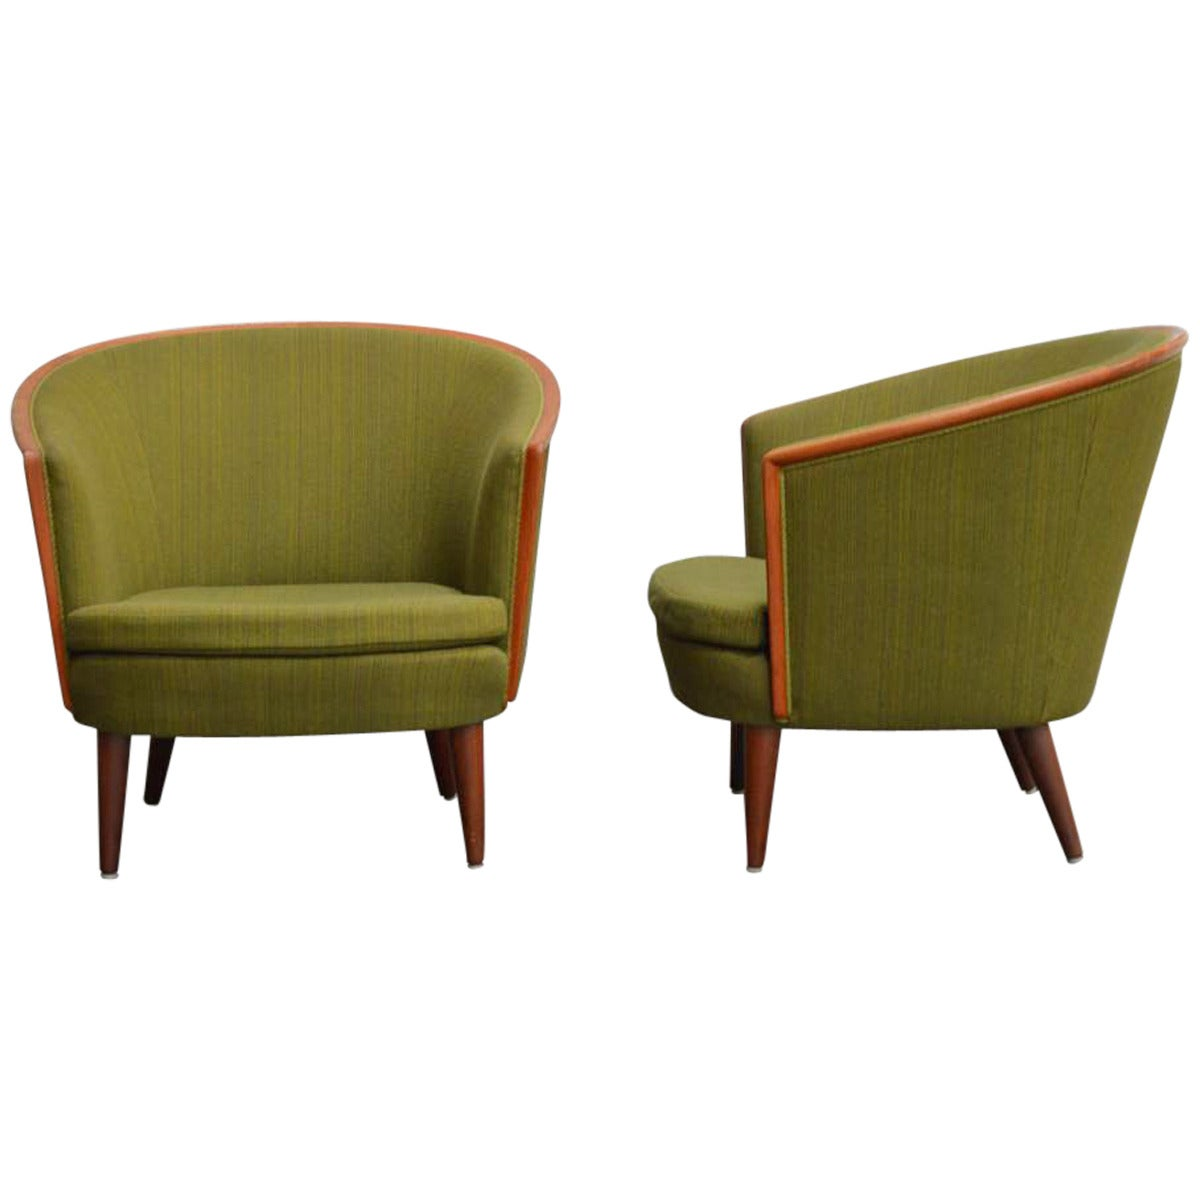 Marvelous Exquisite Rare Pair Of Mid Century Barrel Back Lounge Chairs 1